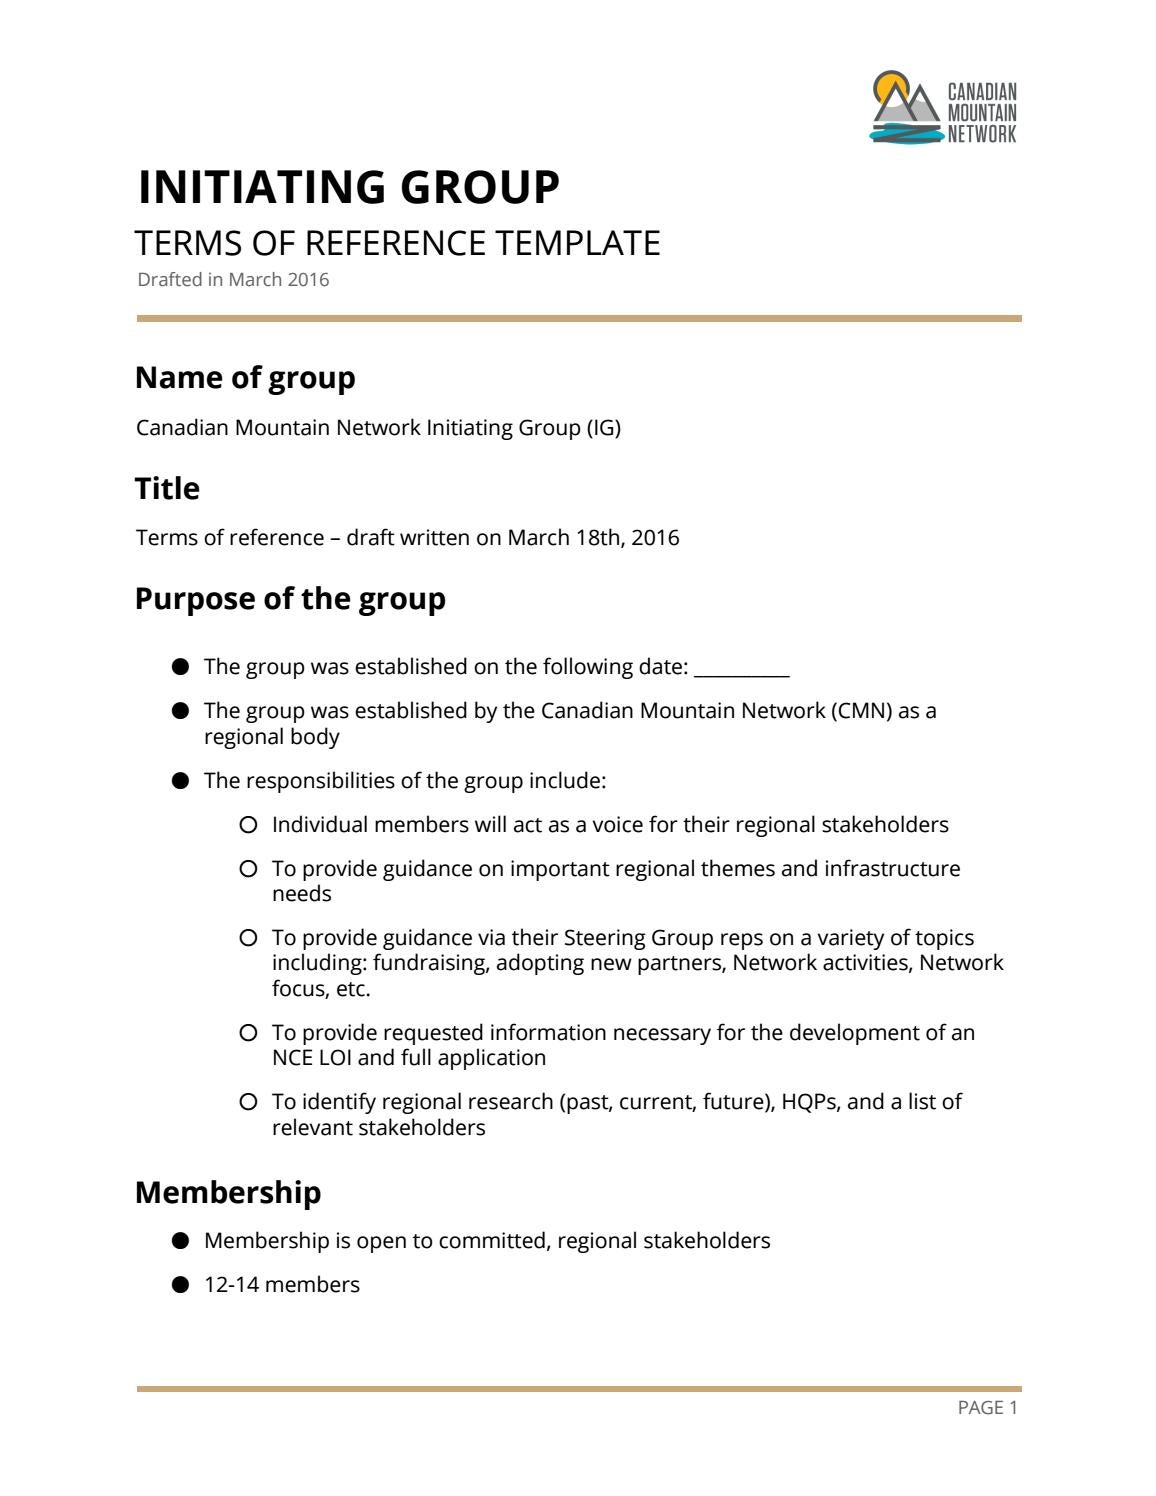 CMN Initiating Group Terms Of Reference Template By Canadian